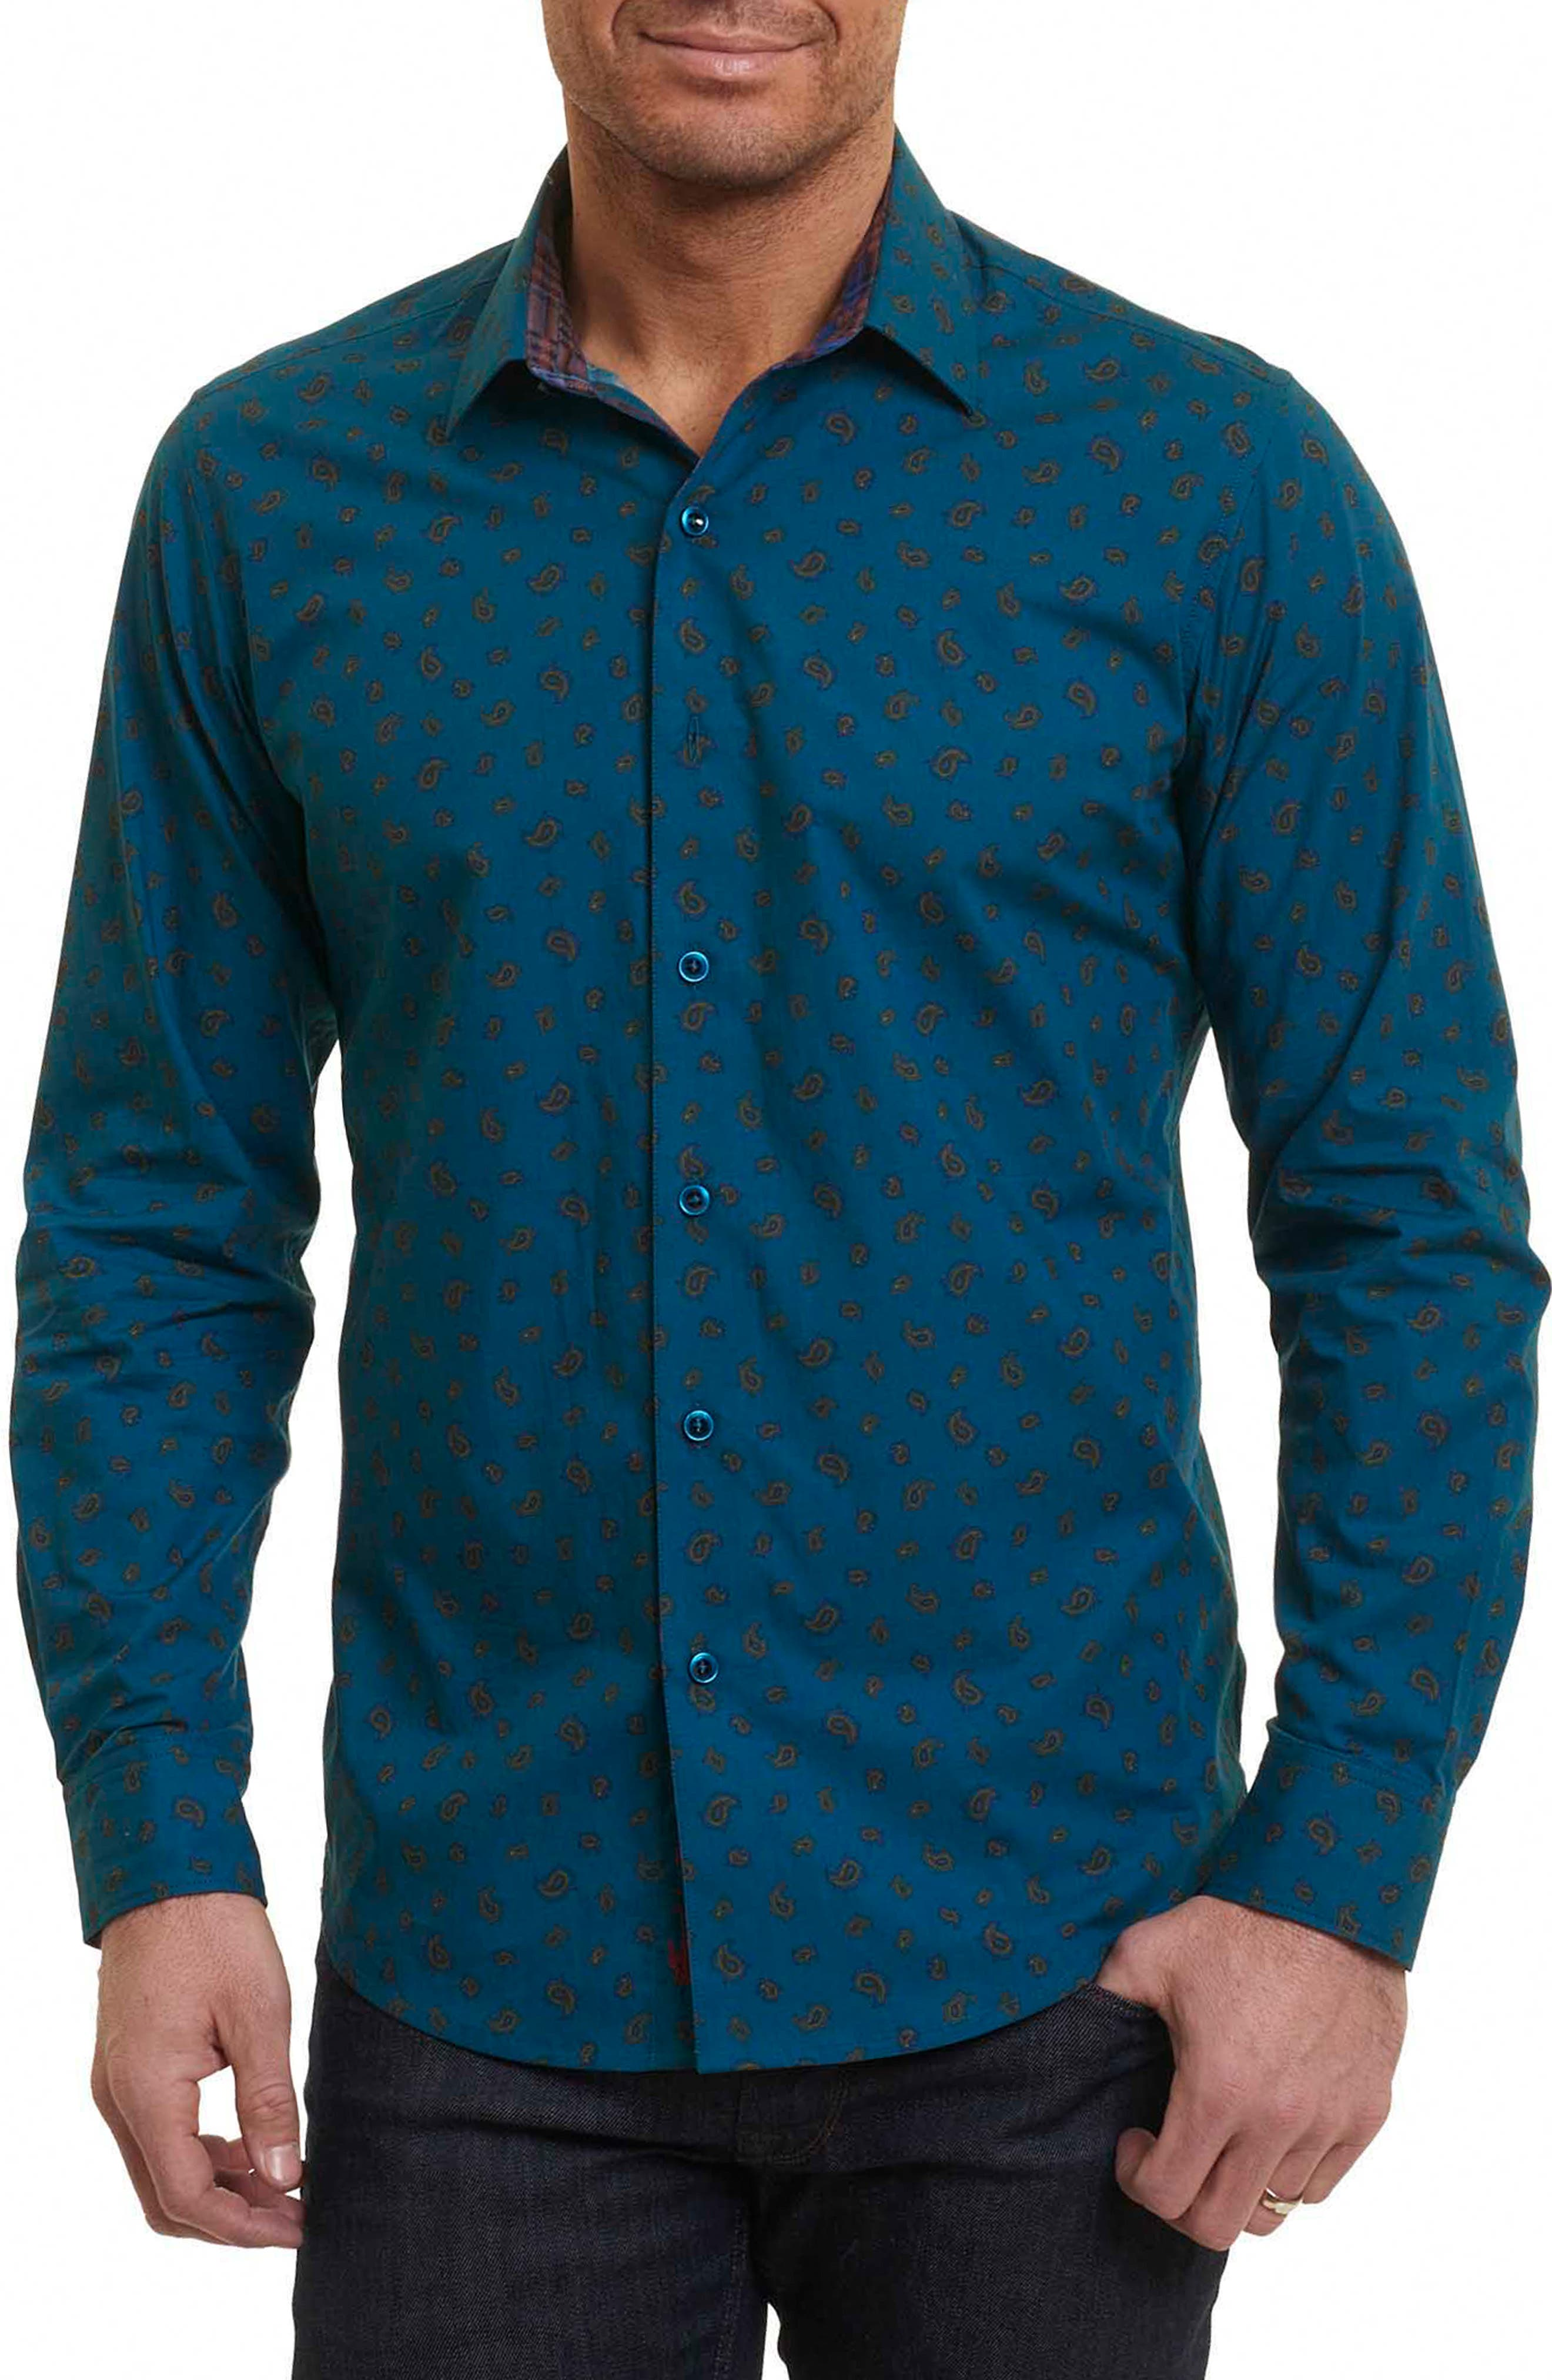 Cold Spring Classic Fit Paisley Sport Shirt,                         Main,                         color, 463